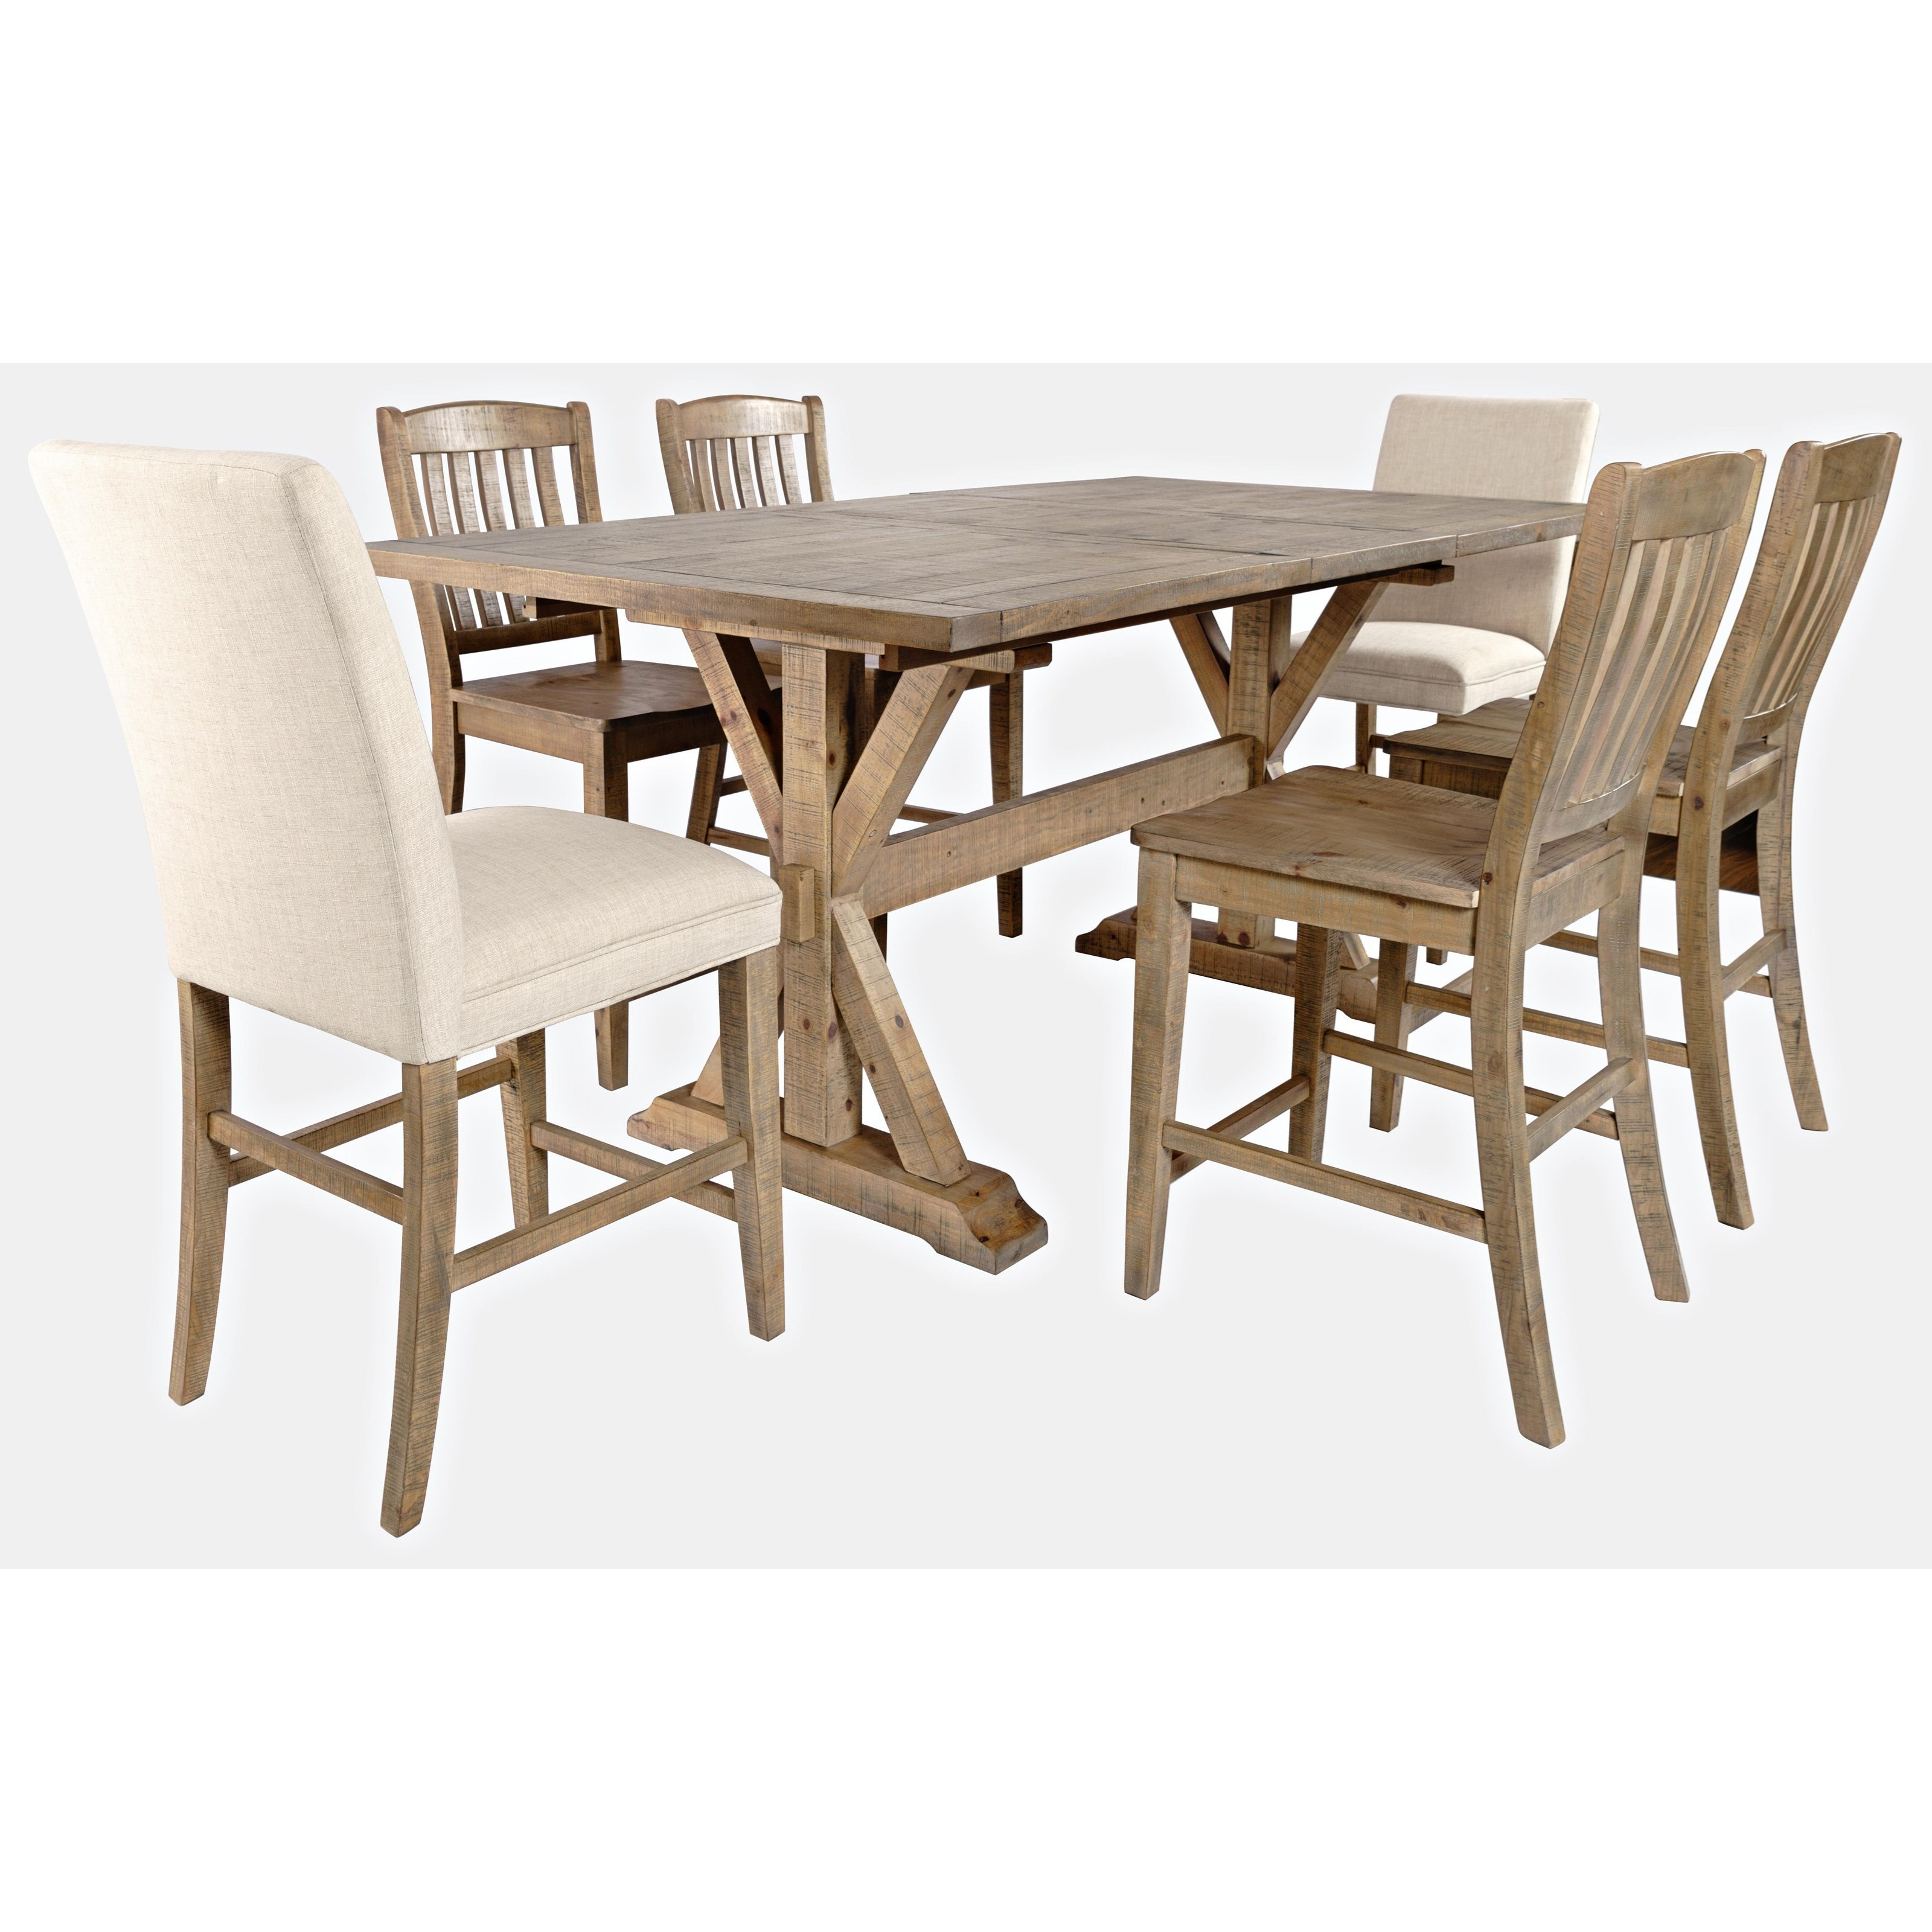 Carlyle Crossing 7-Piece Counter Table and Chair Set by Jofran at Jofran